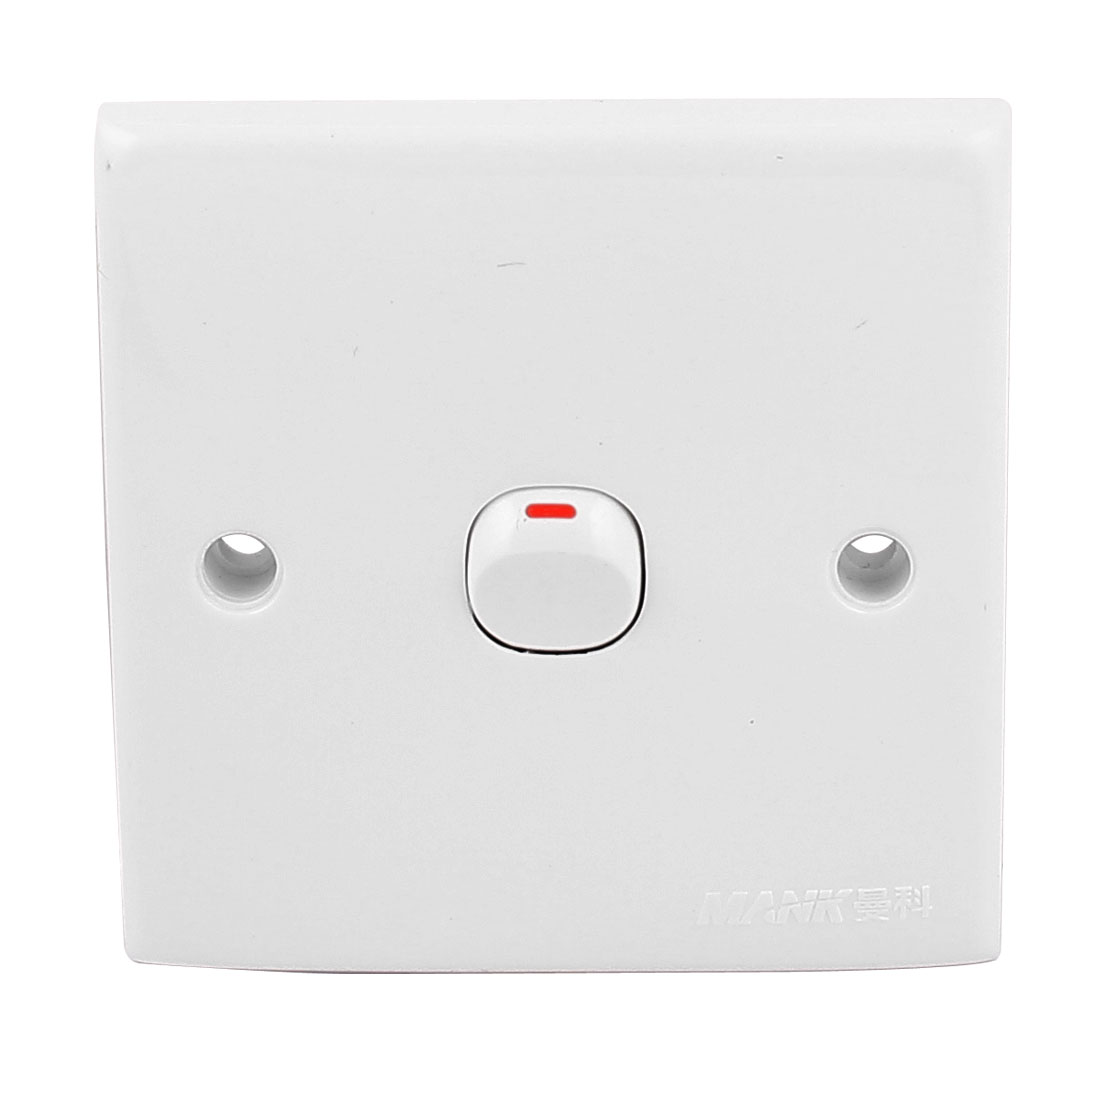 AC250V 10A 86mm x 86mm White Plastic Case Square On/Off Control Wall Mount Switch